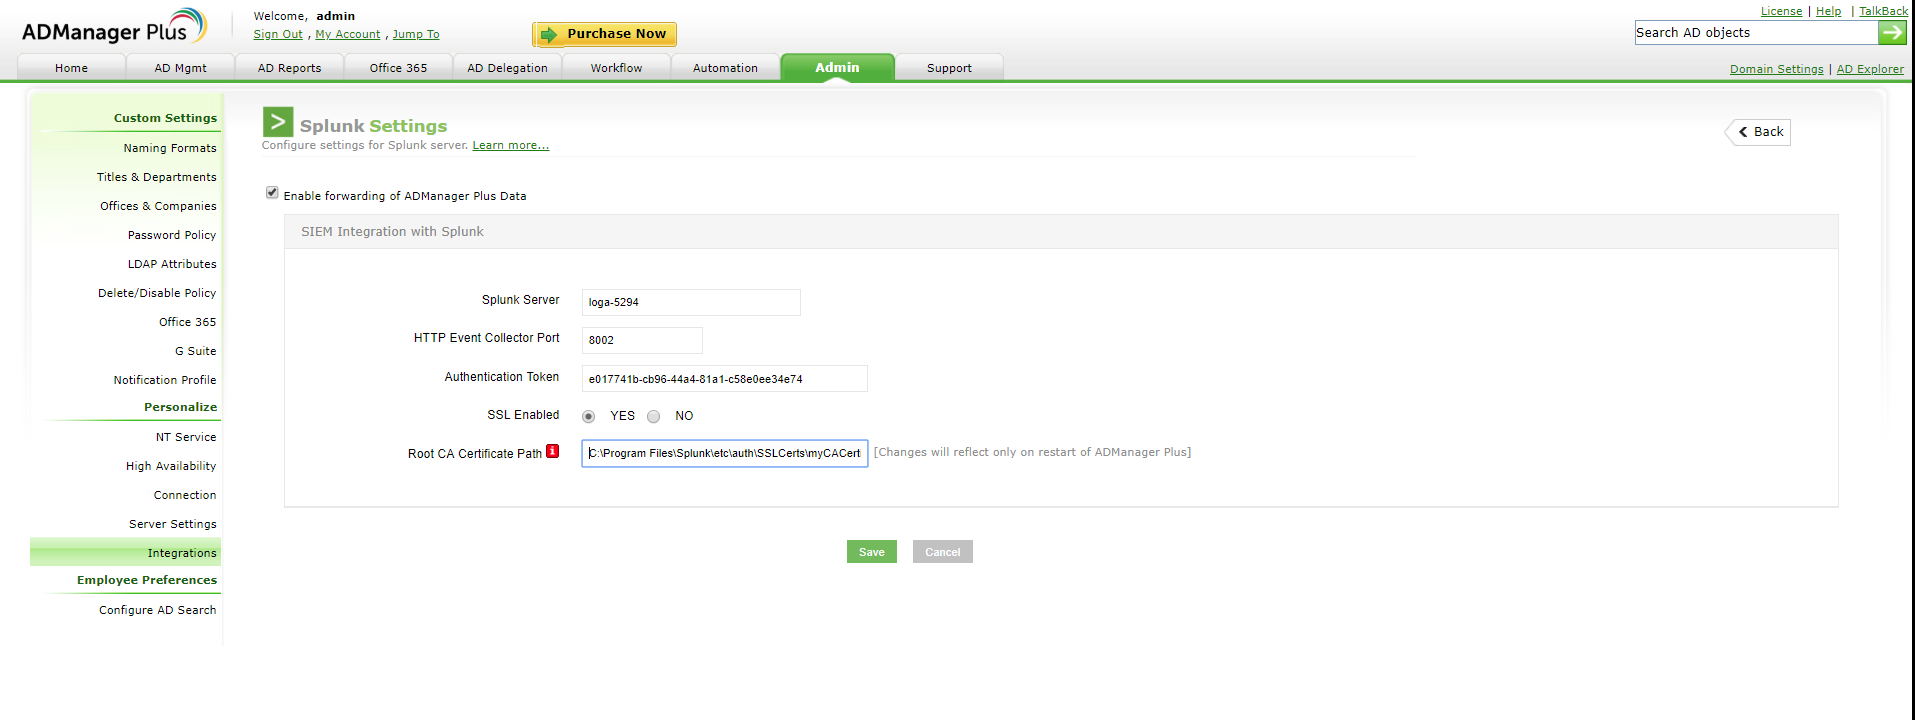 Integrate ADManager Plus with Syslog and Splunk servers